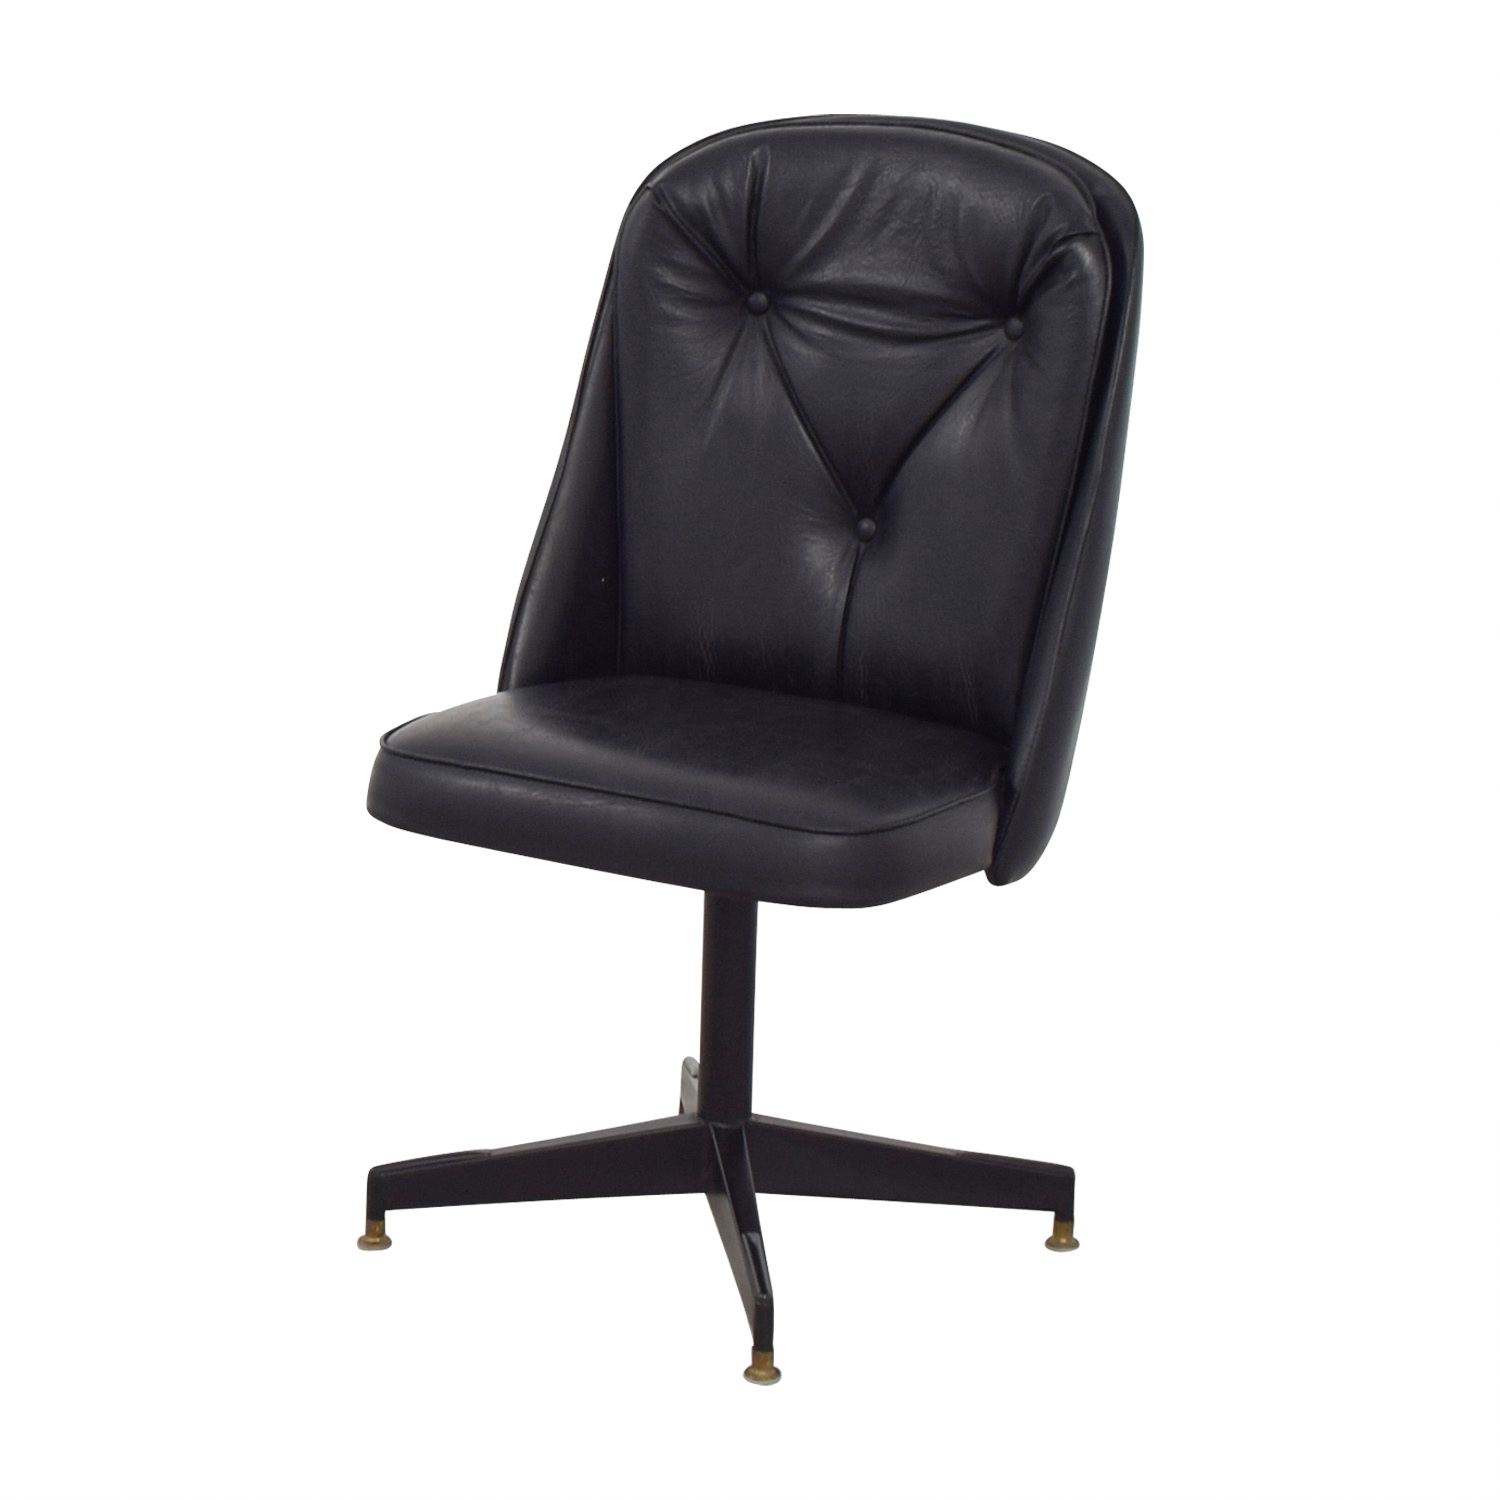 62 Off Black Leather Swivel Office Desk Chair Chairs